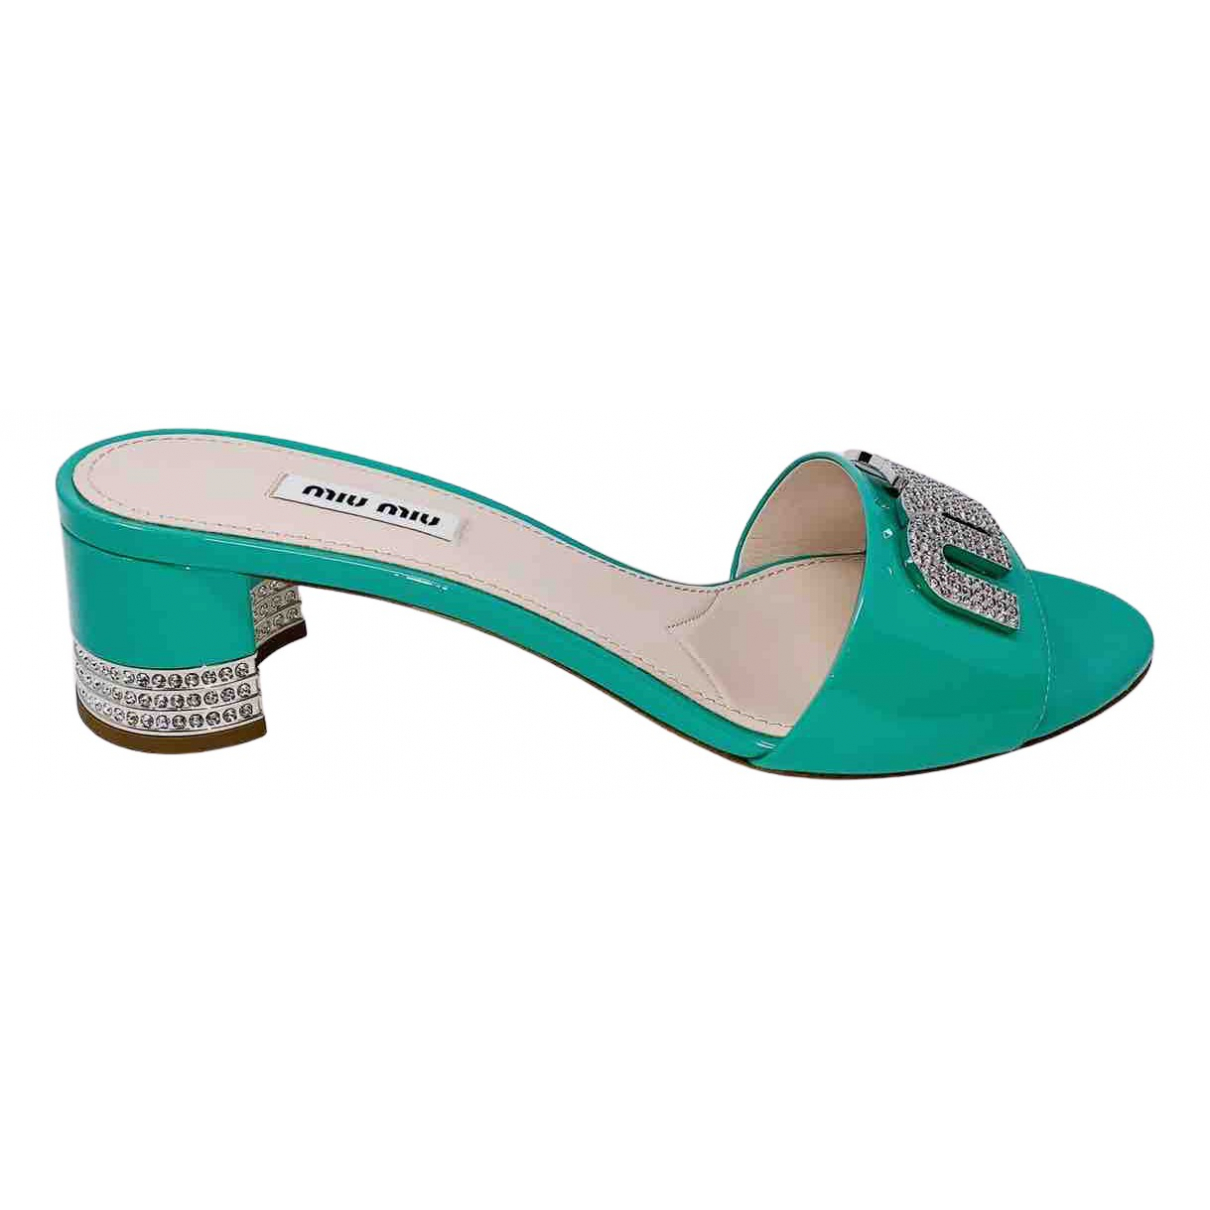 Miu Miu \N Green Patent leather Sandals for Women 41 IT